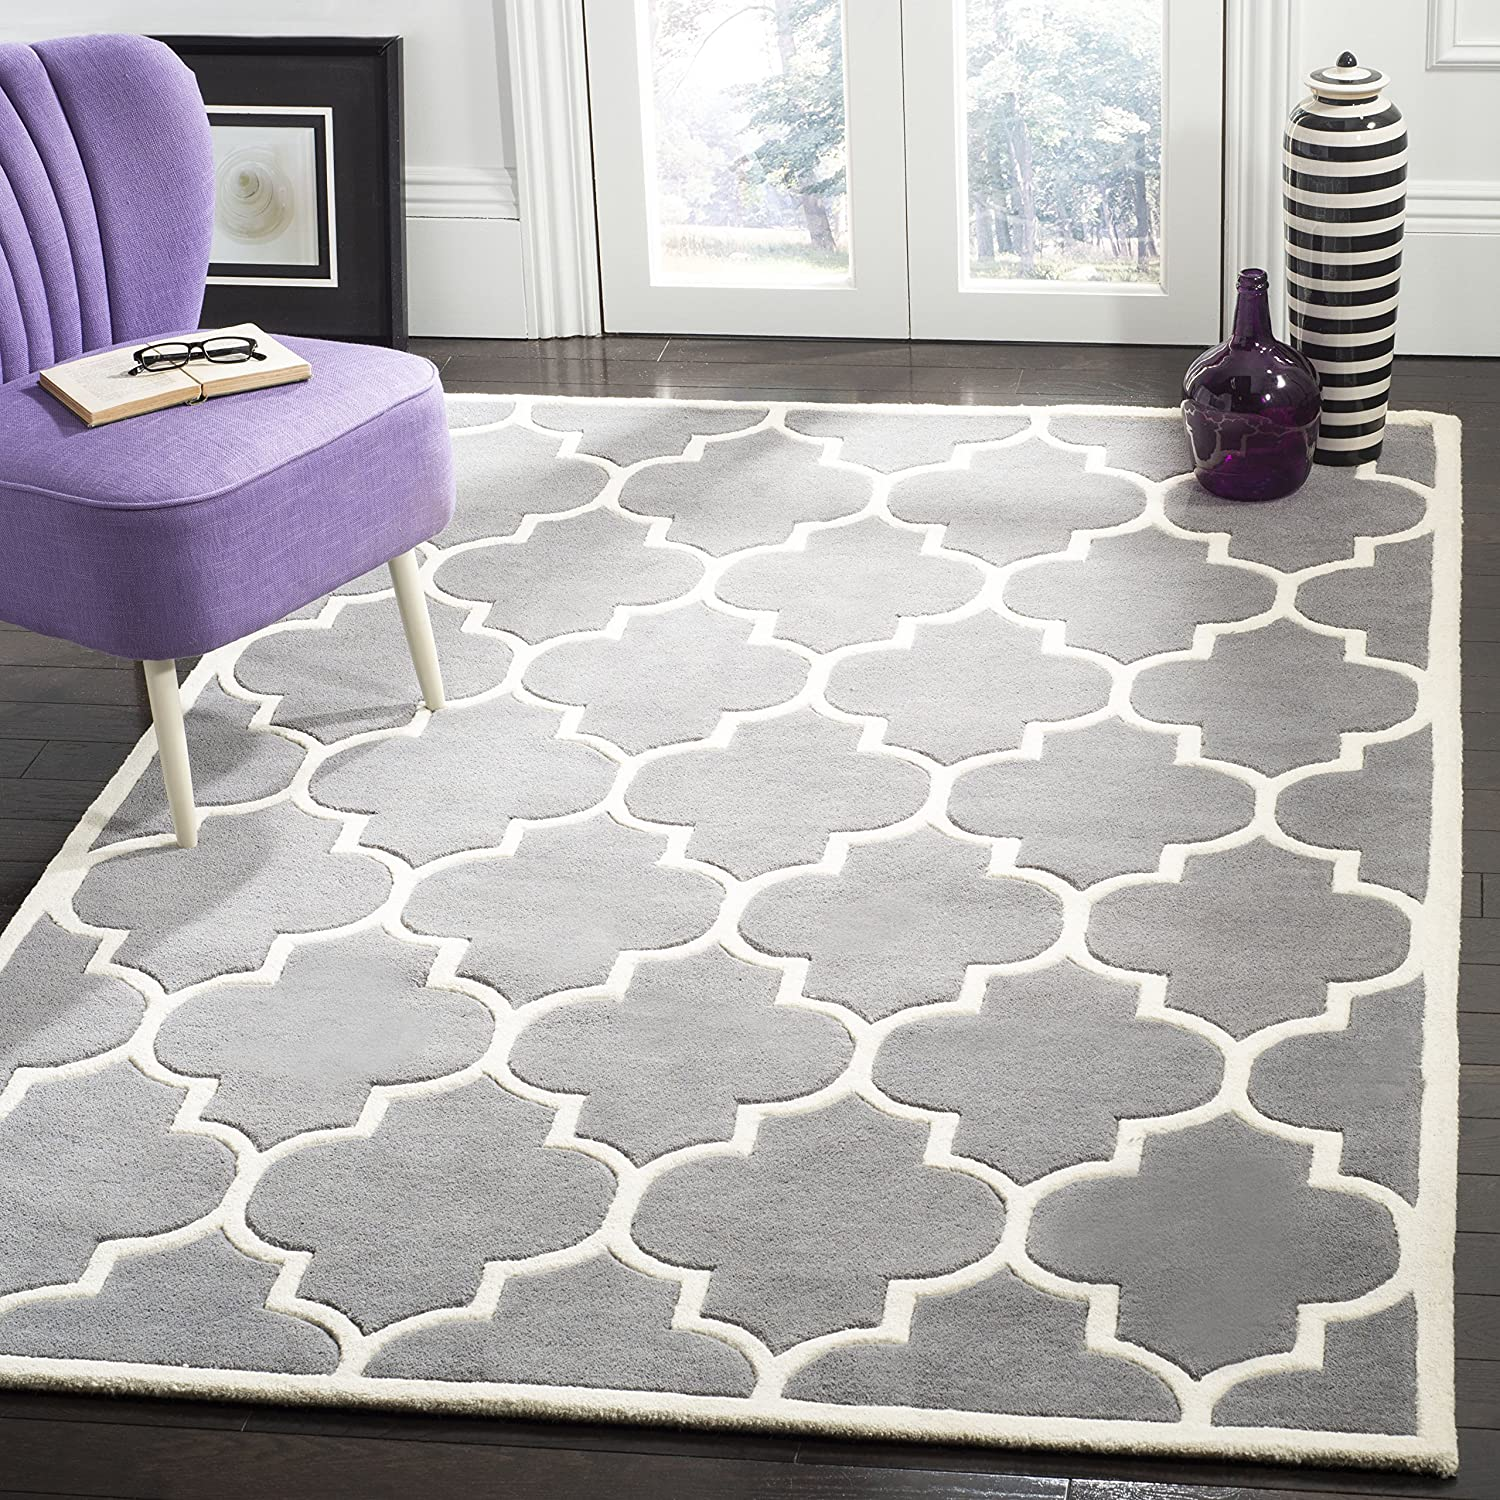 Safavieh Chatham Collection CHT733D Geometric Premium Handmade Rapid rise Now free shipping W